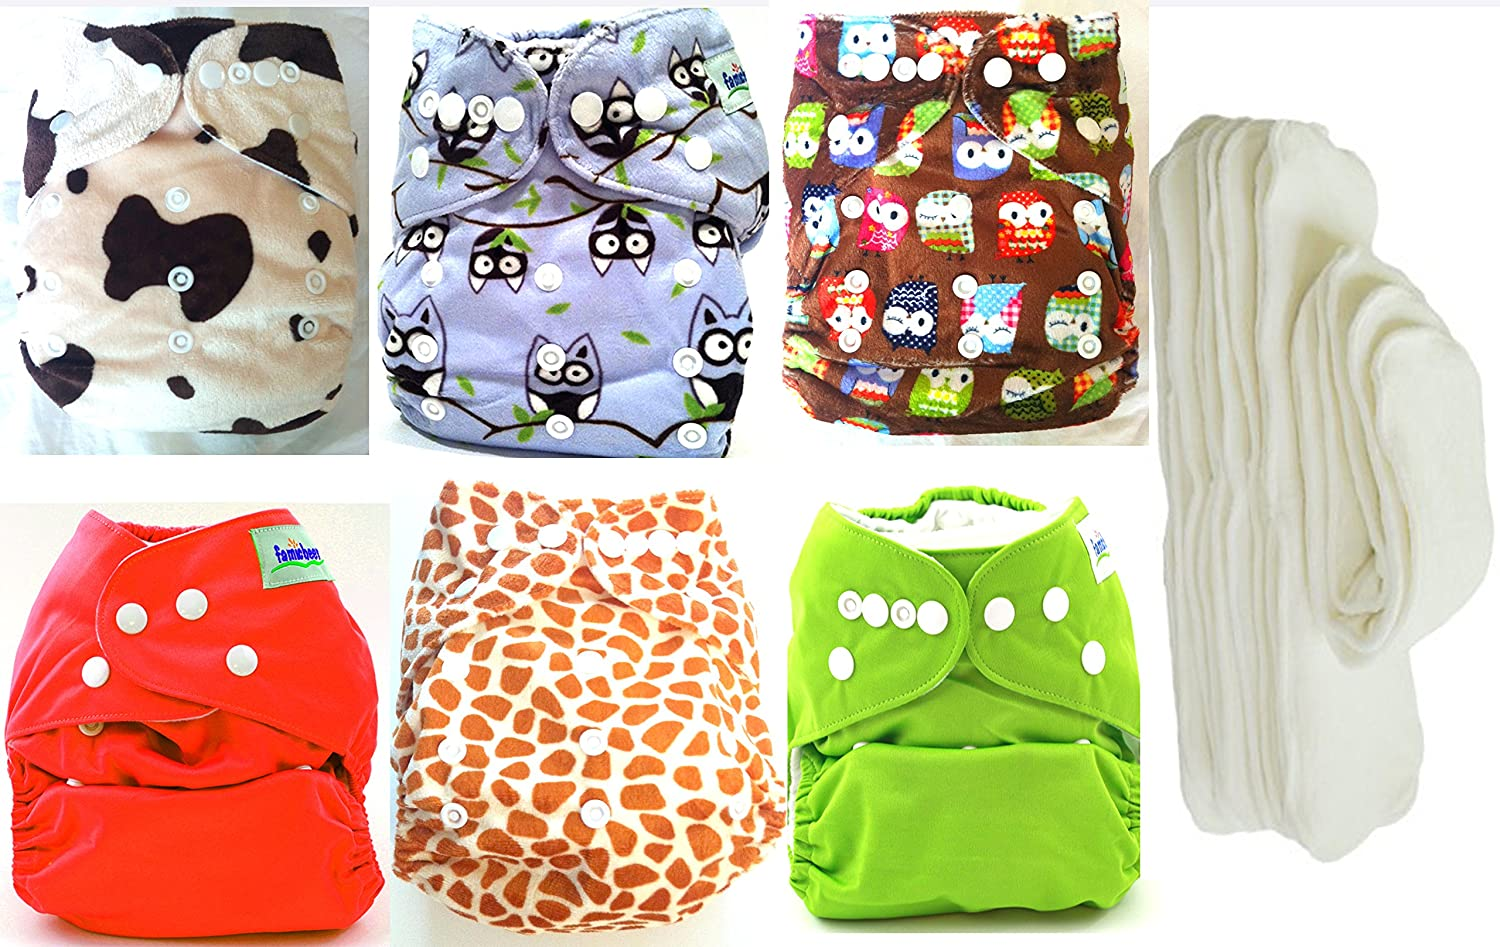 Baby with and 6pcs Pack Pocket Washable Adjustable Cloth Diaper Baby with 6Inserts Animals (animal print and owls) by BabyWearCloth B00LKH0FBG, セイワムラ:413a5667 --- ijpba.info